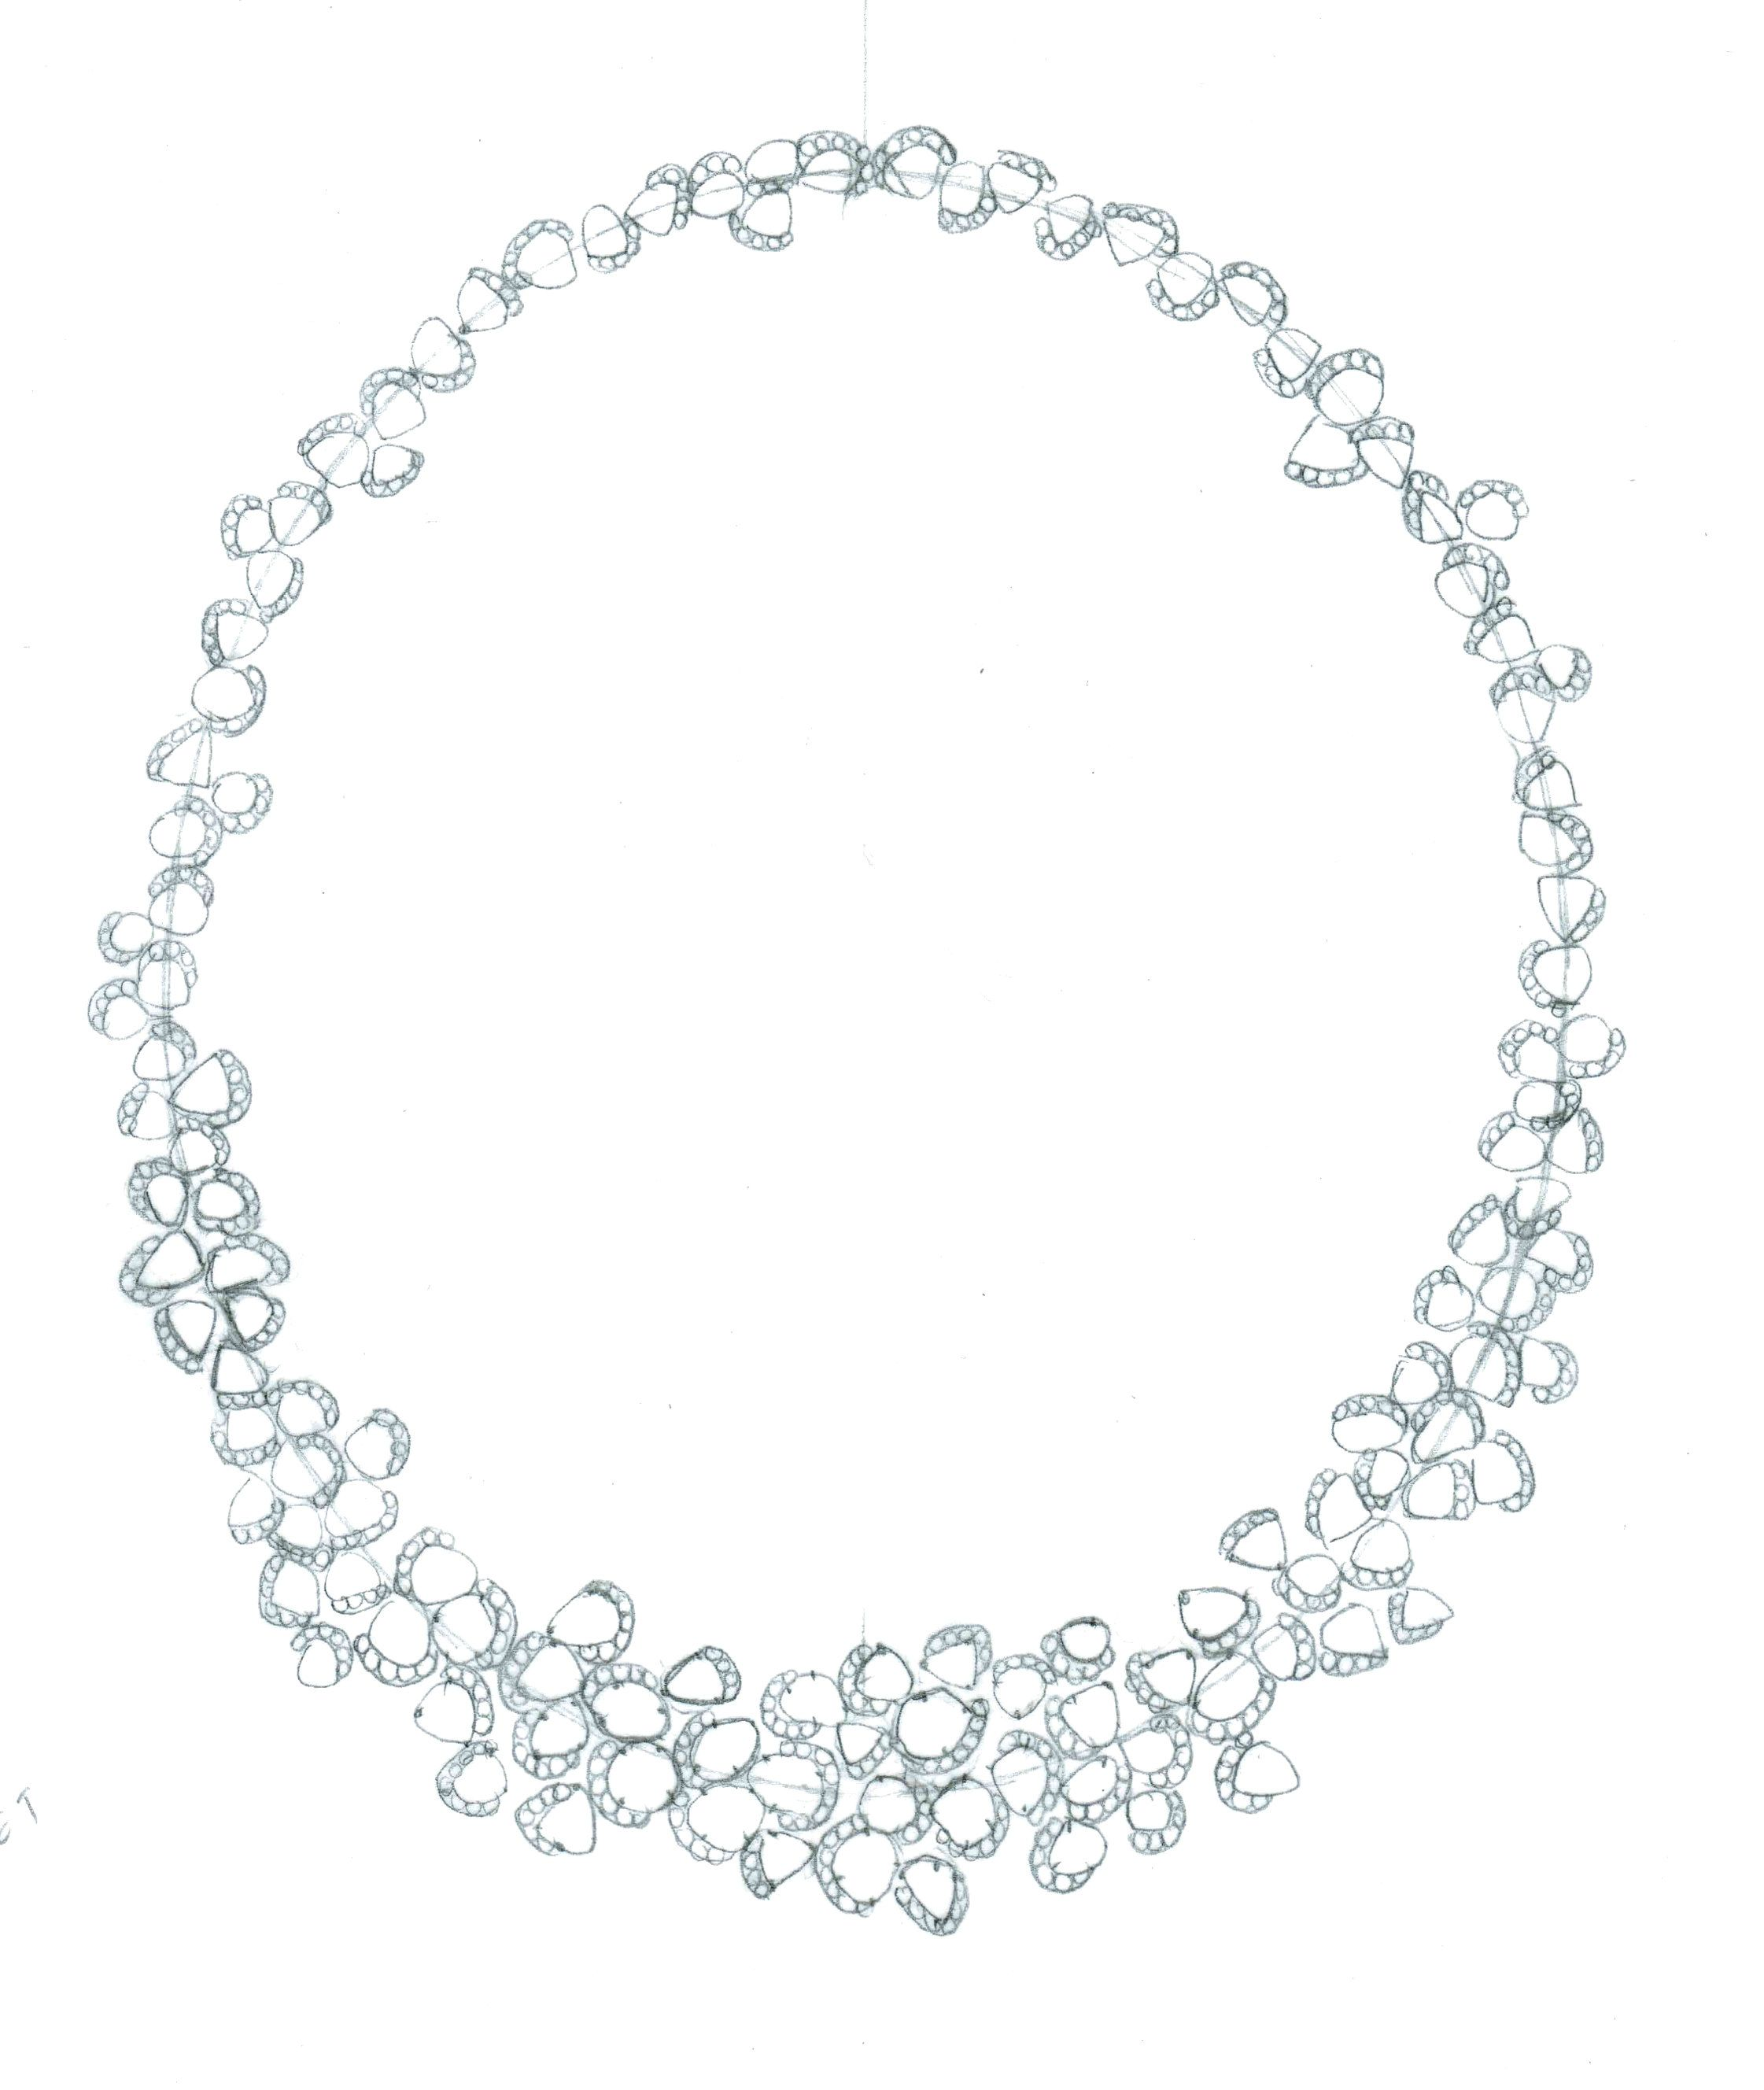 Champagne Bubbles wreath necklace drawing. #art #jewelry #